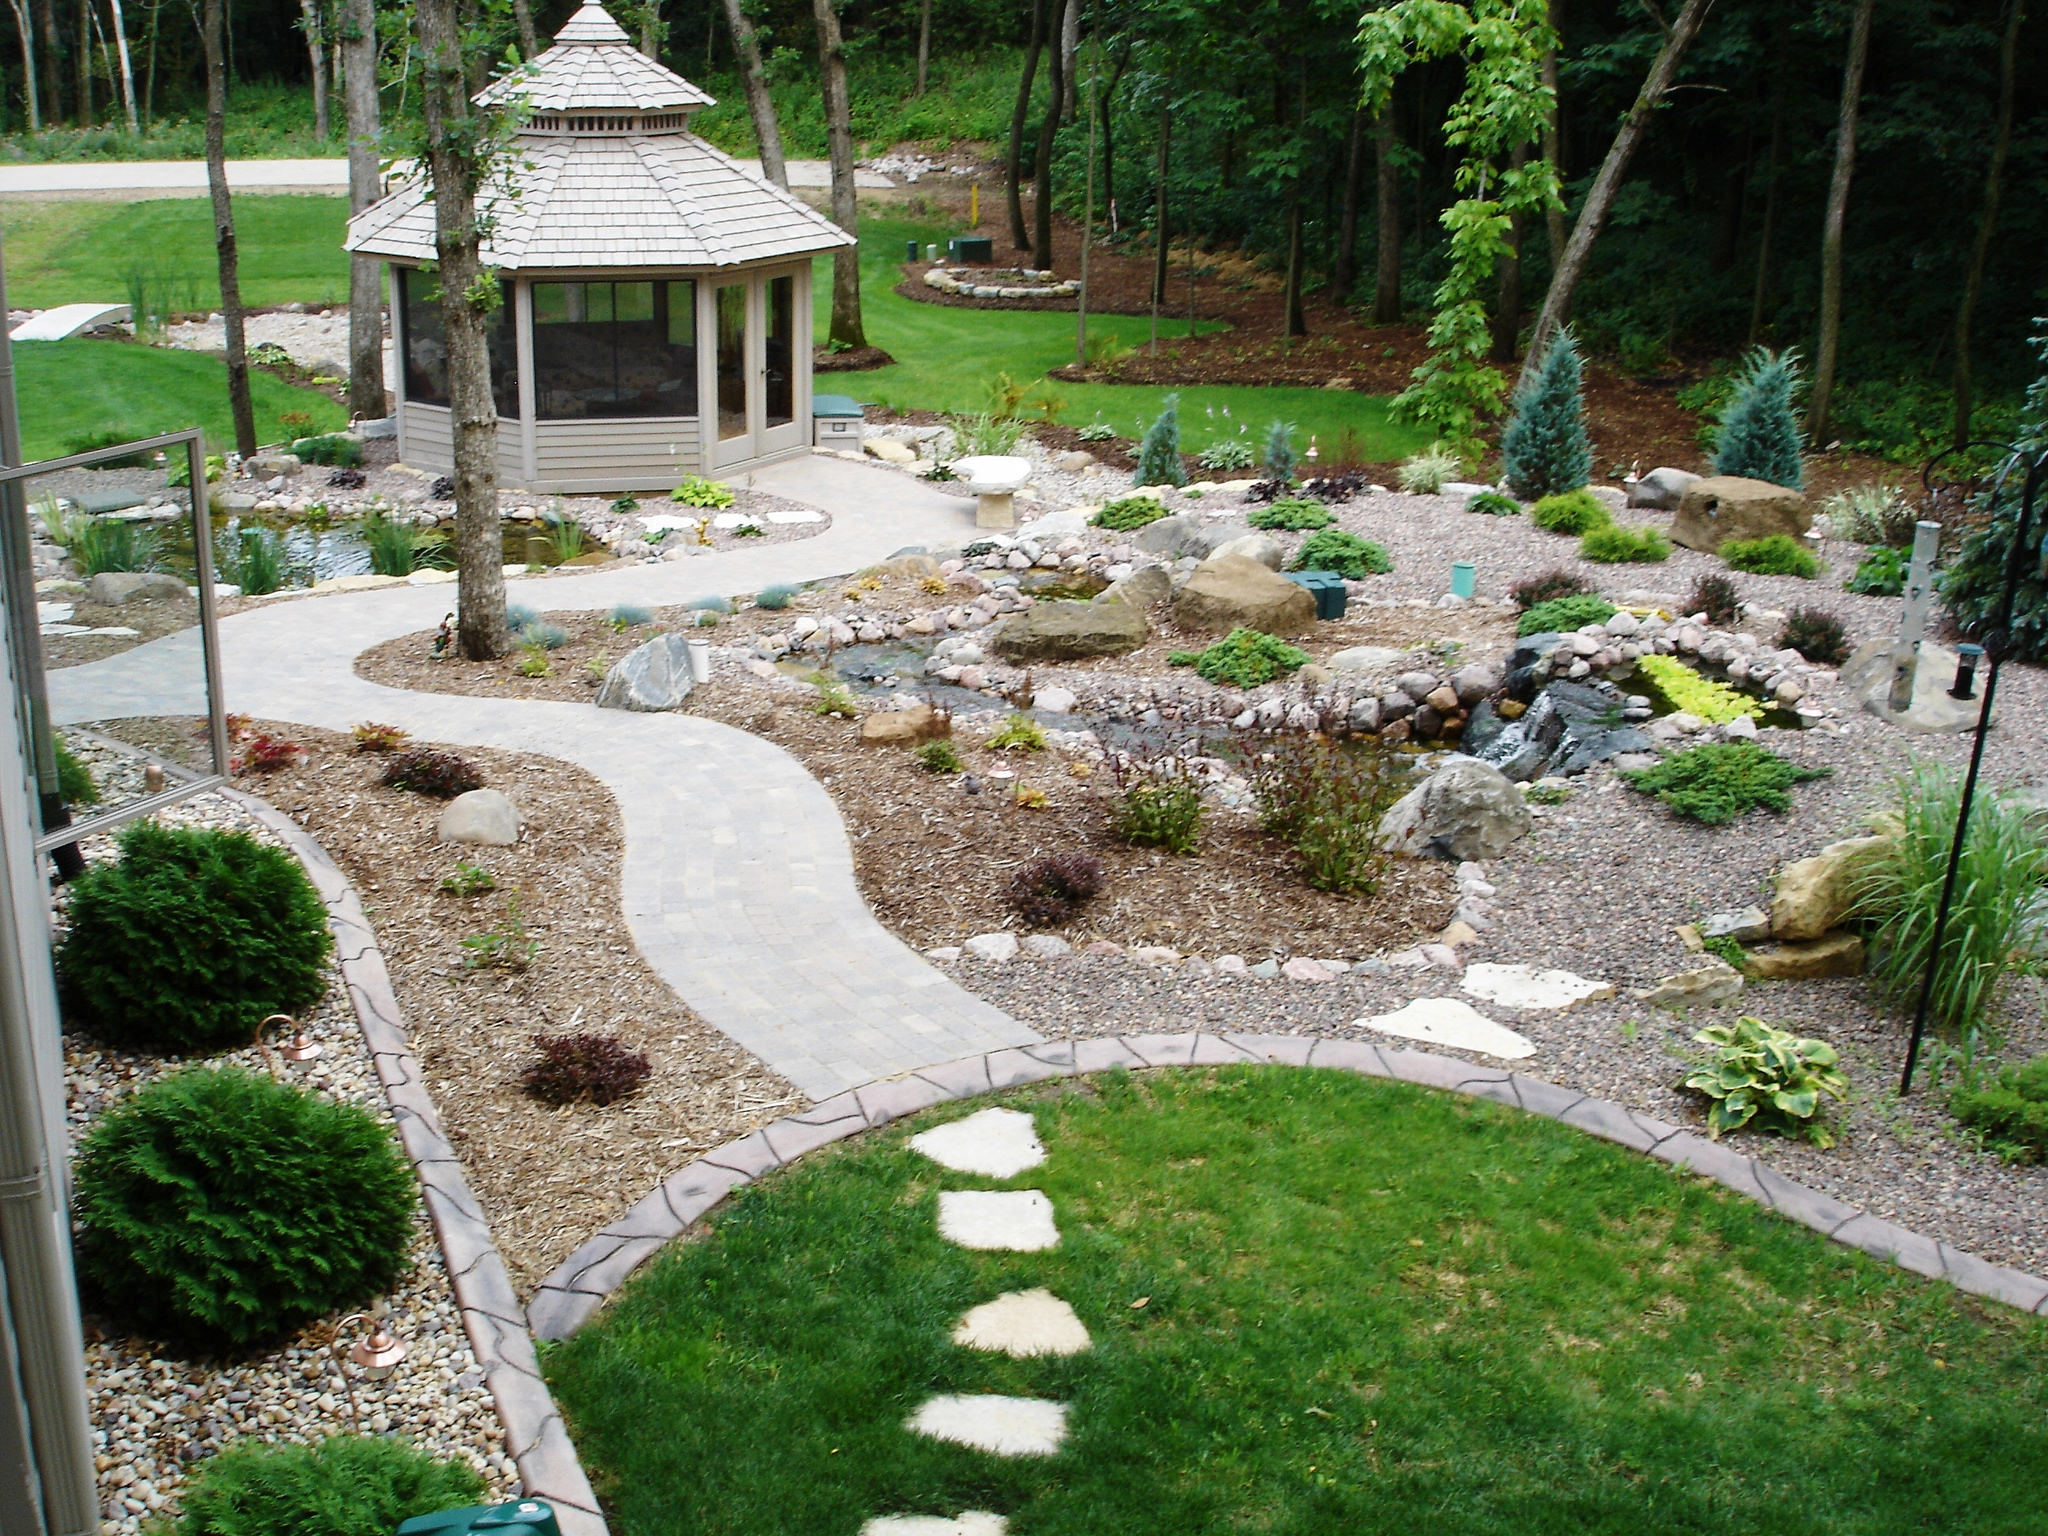 Pond and pondless waterfall in Waunakee, WI